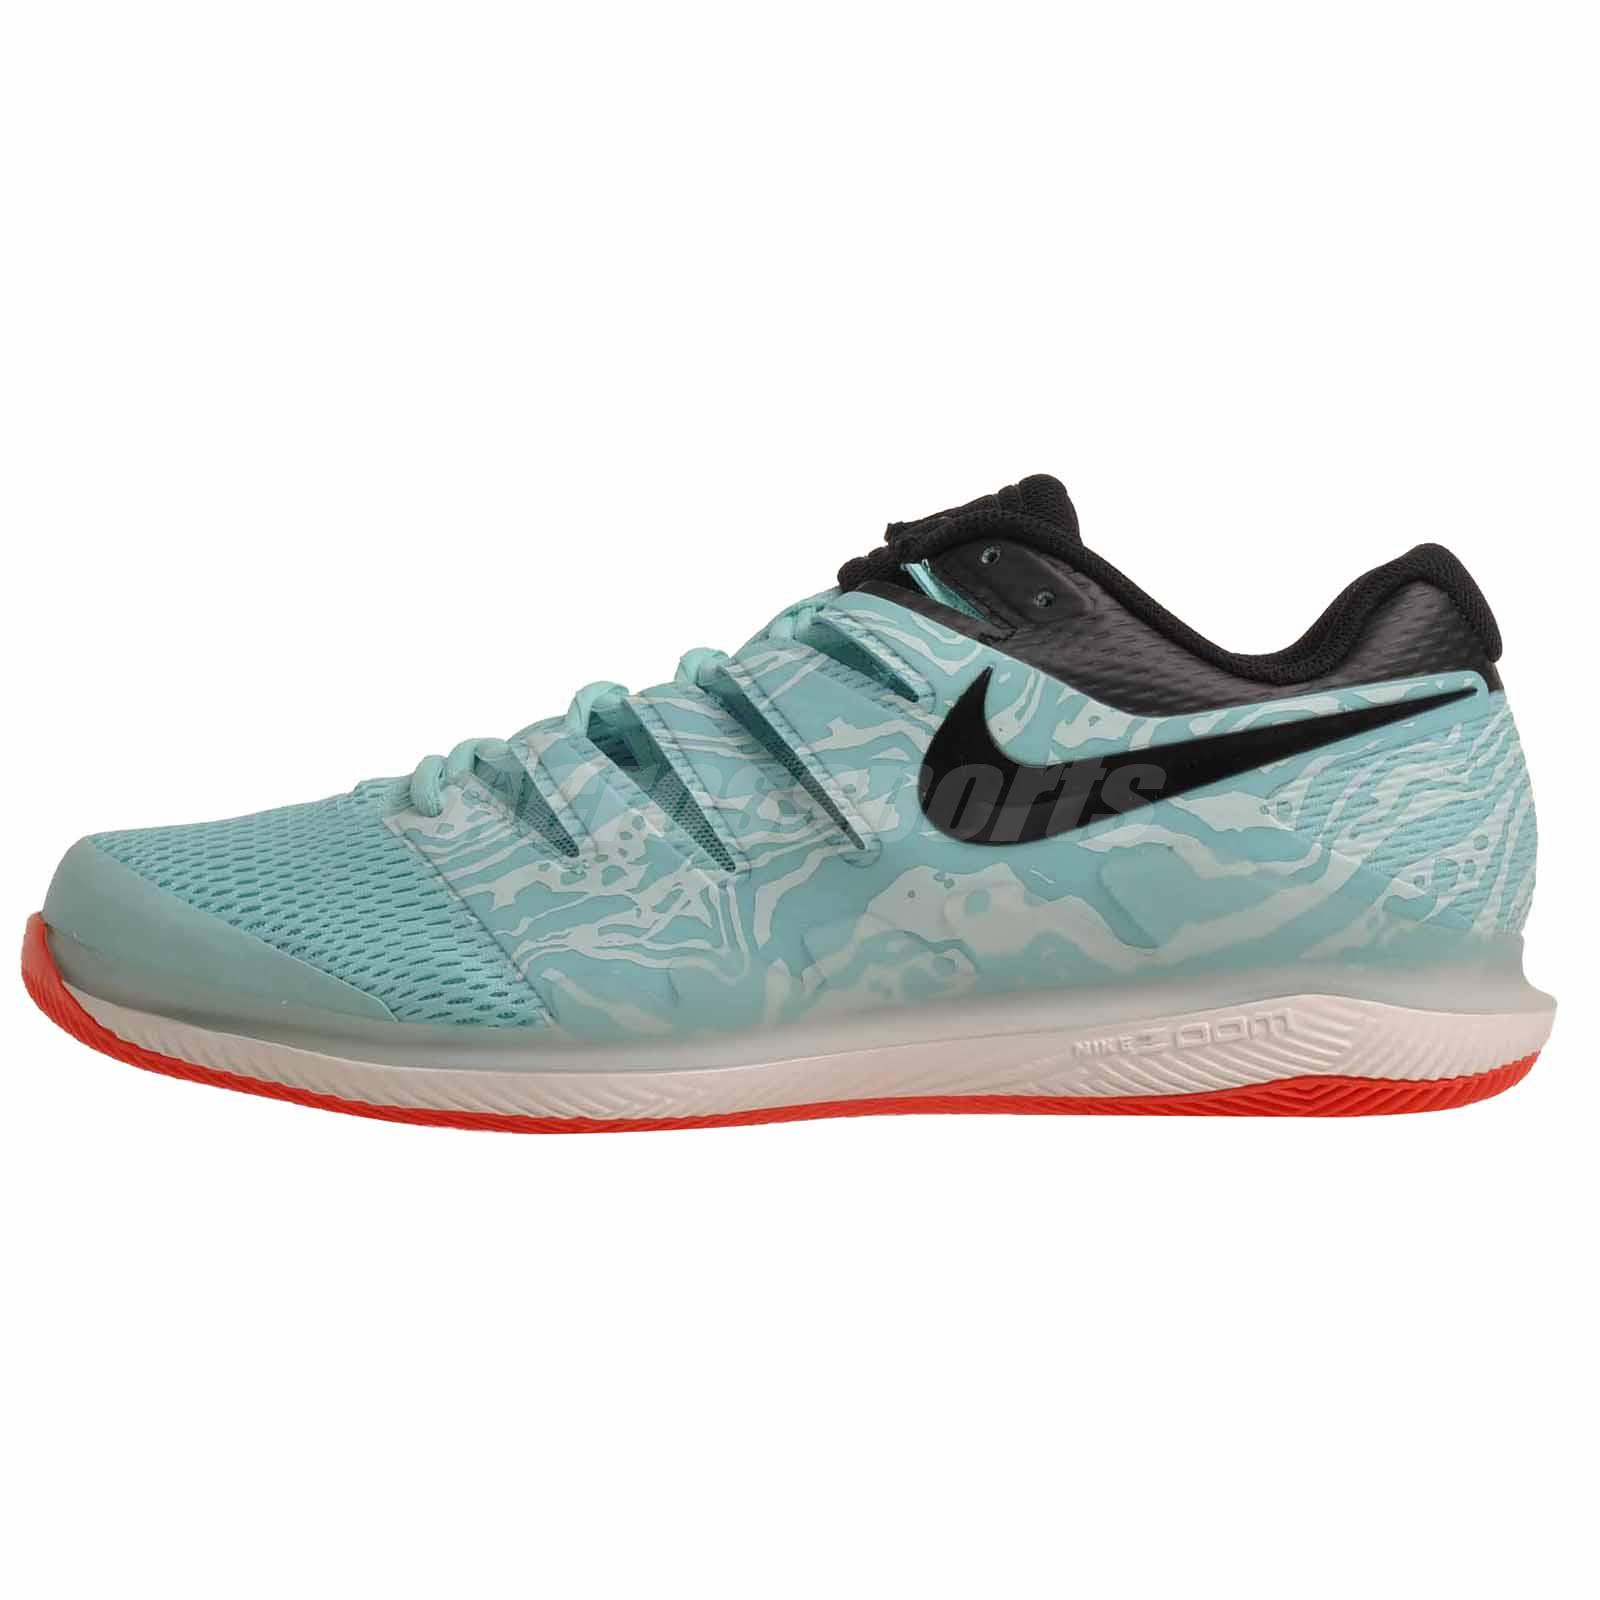 Nike Zoom Grey And Green Details About Nike Air Zoom Vapor X Hc Tennis Mens Shoes Green Black Aa8030 301